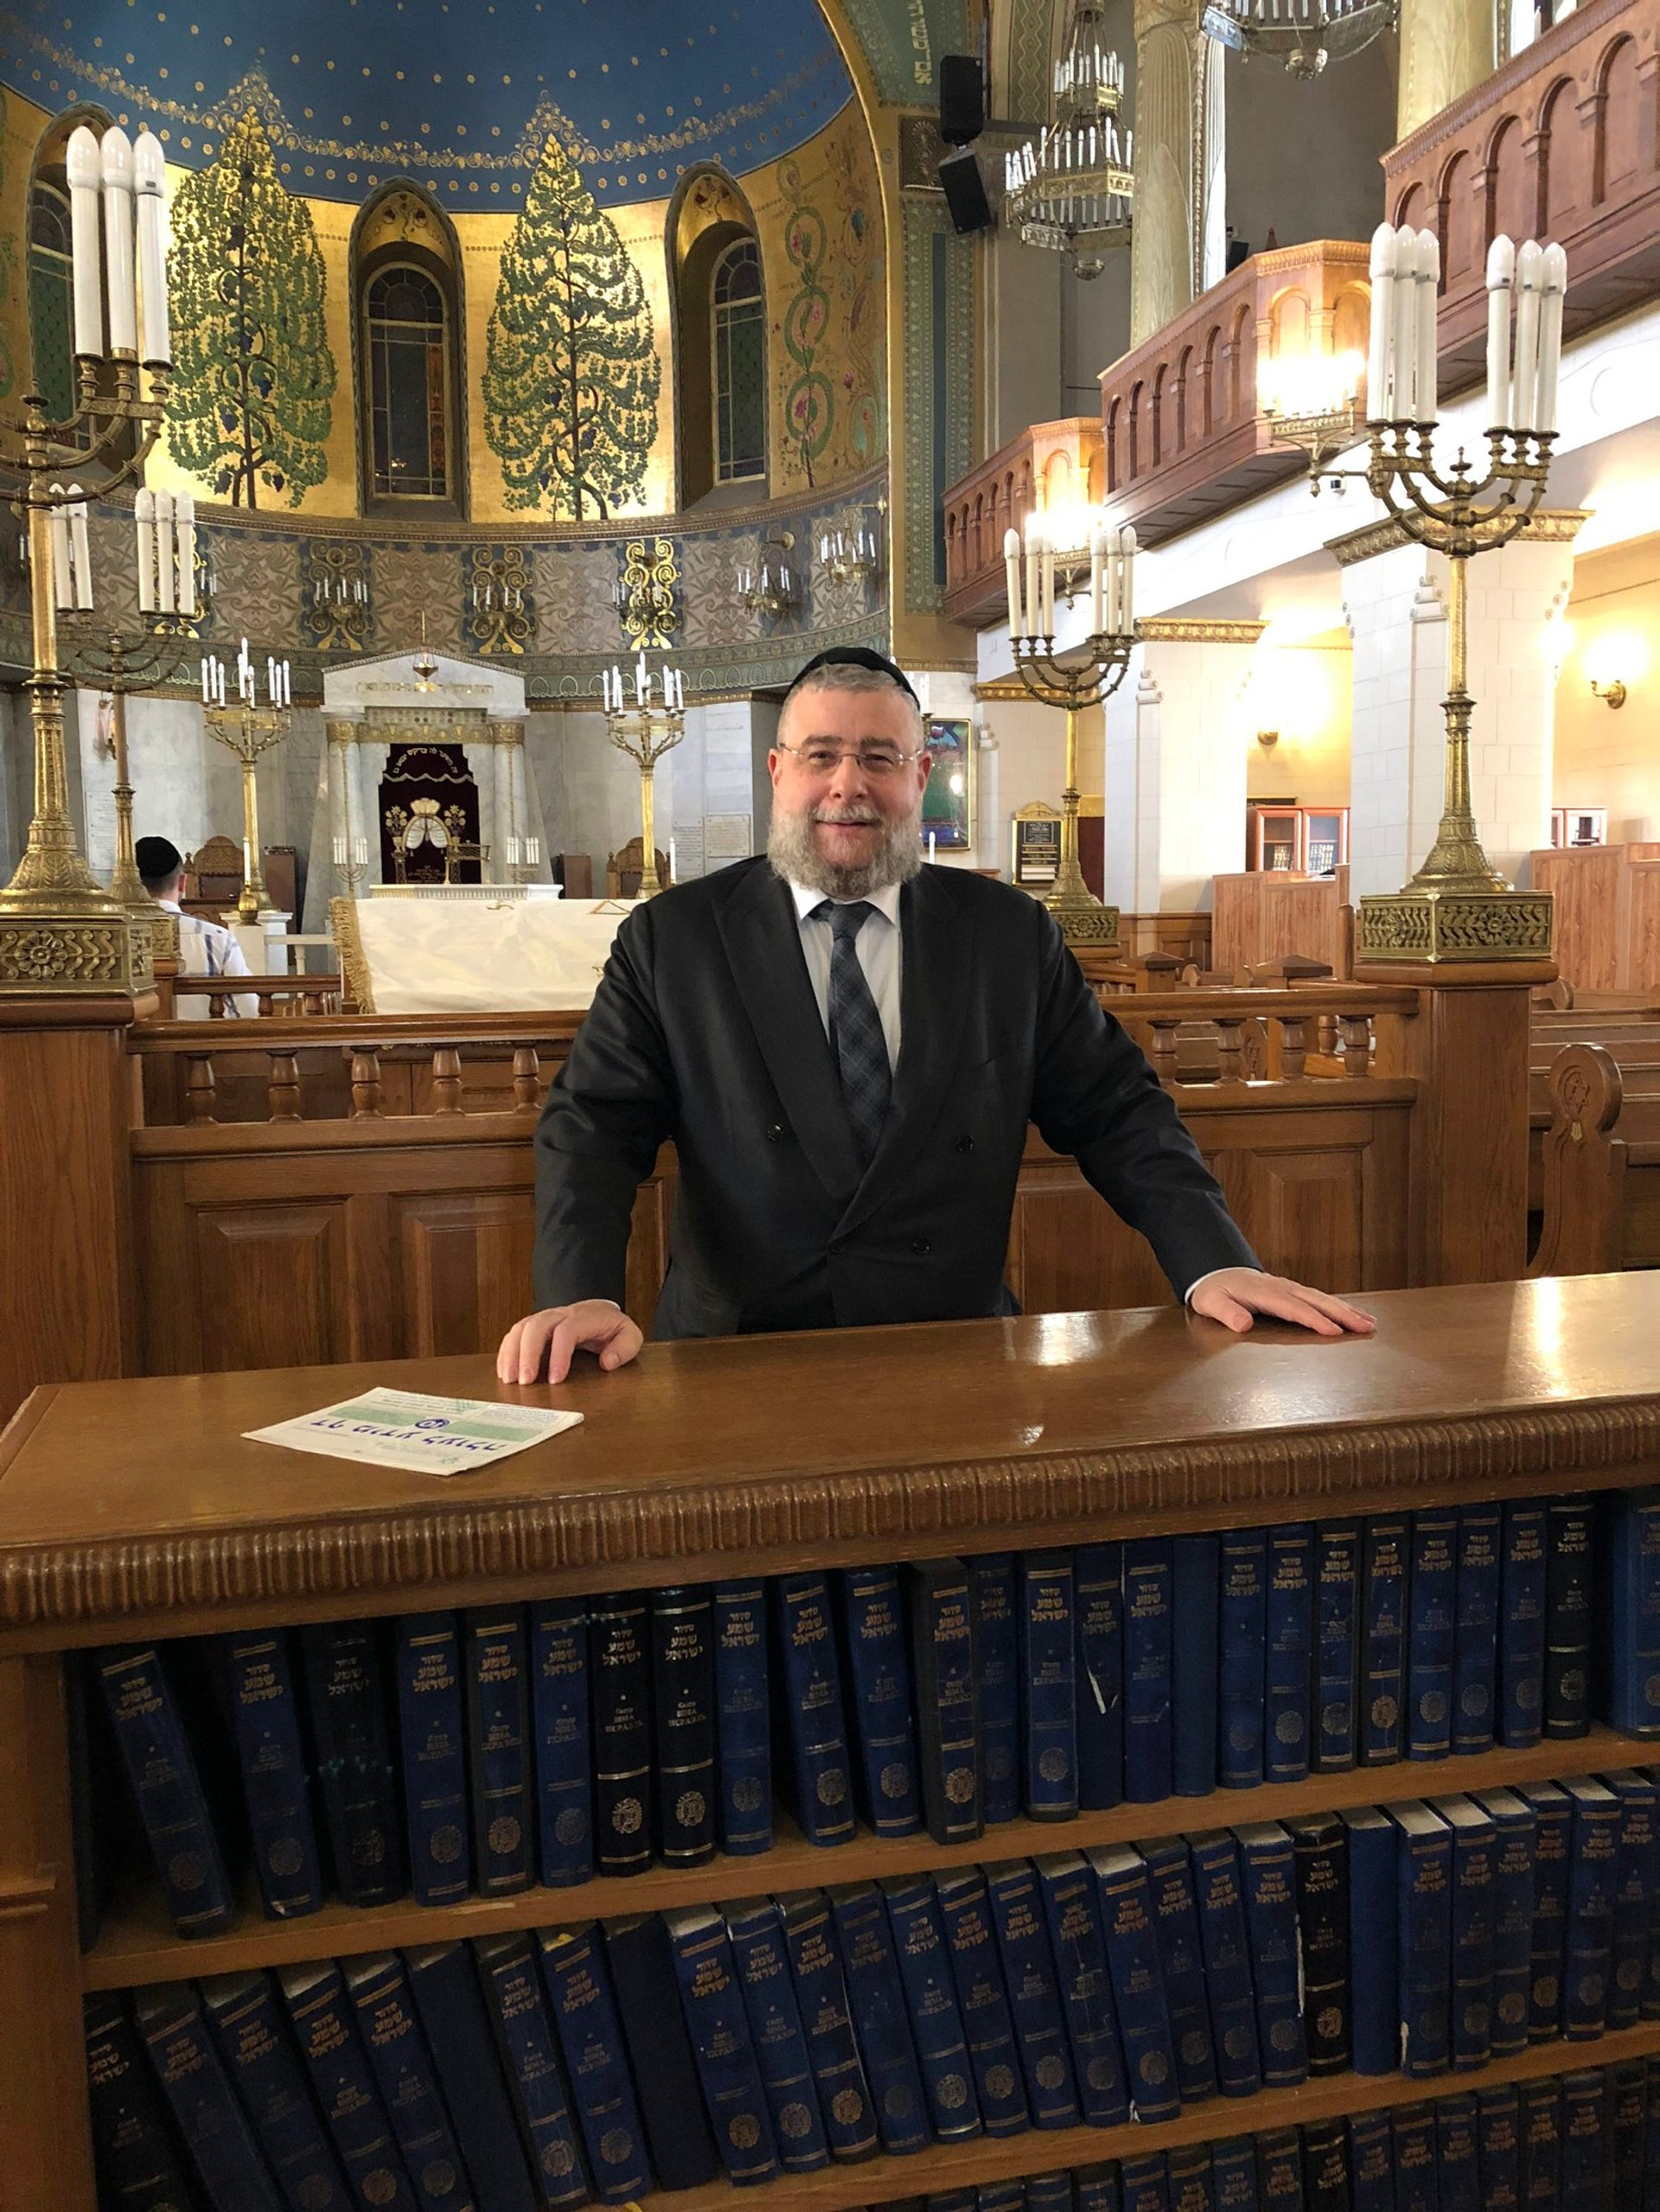 Pinchas Goldschmidt, chief rabbi of Moscow, posing in the main sanctuary of the Choral Synagogue in Moscow, March 2018.